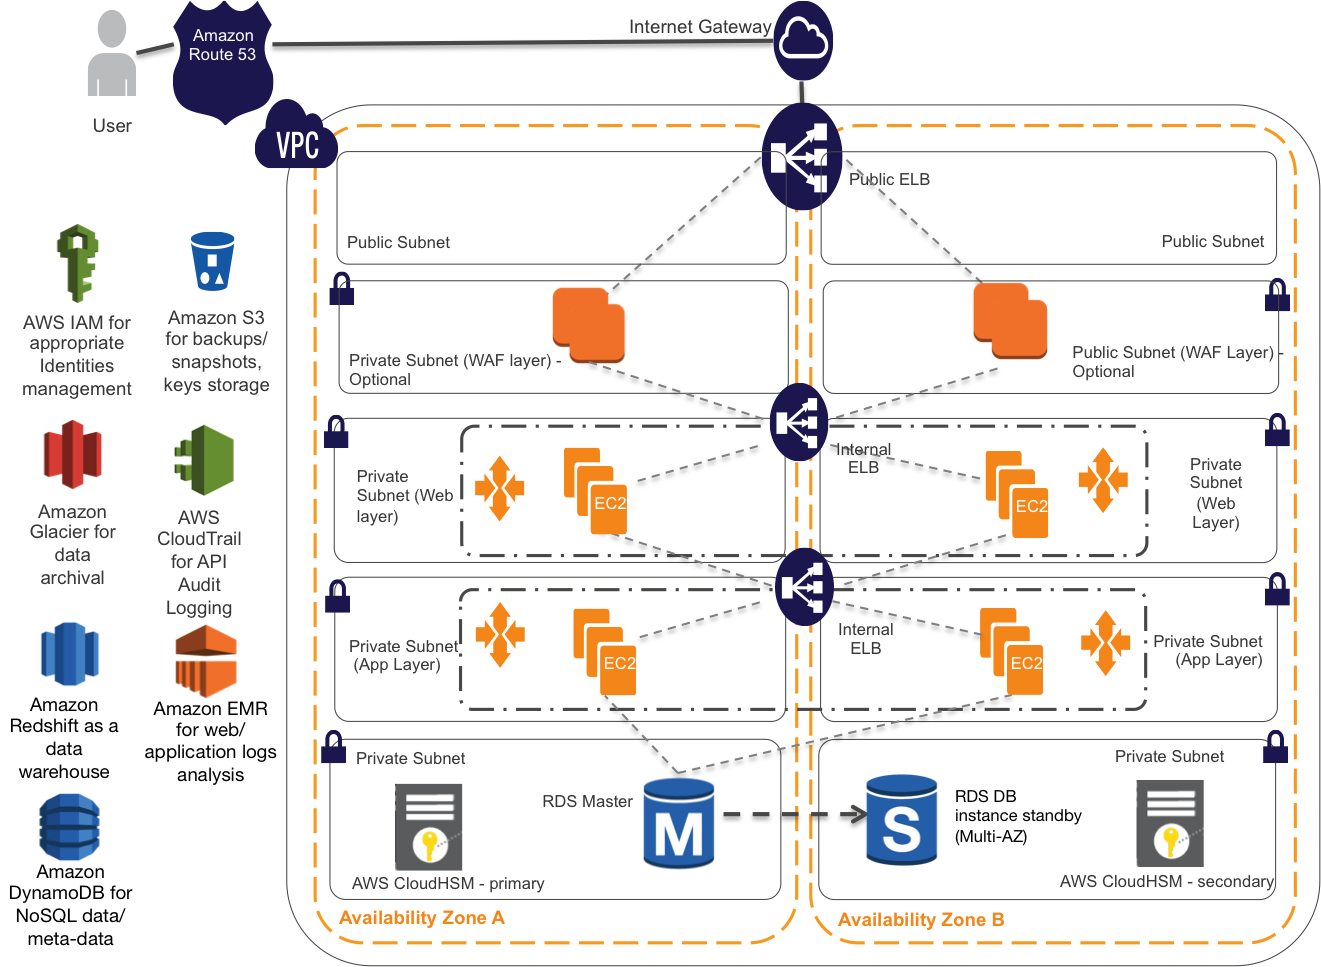 Architecting Your Healthcare Application For Hipaa Compliance Part 2 By Aws Startups Aws Startup Collection Medium